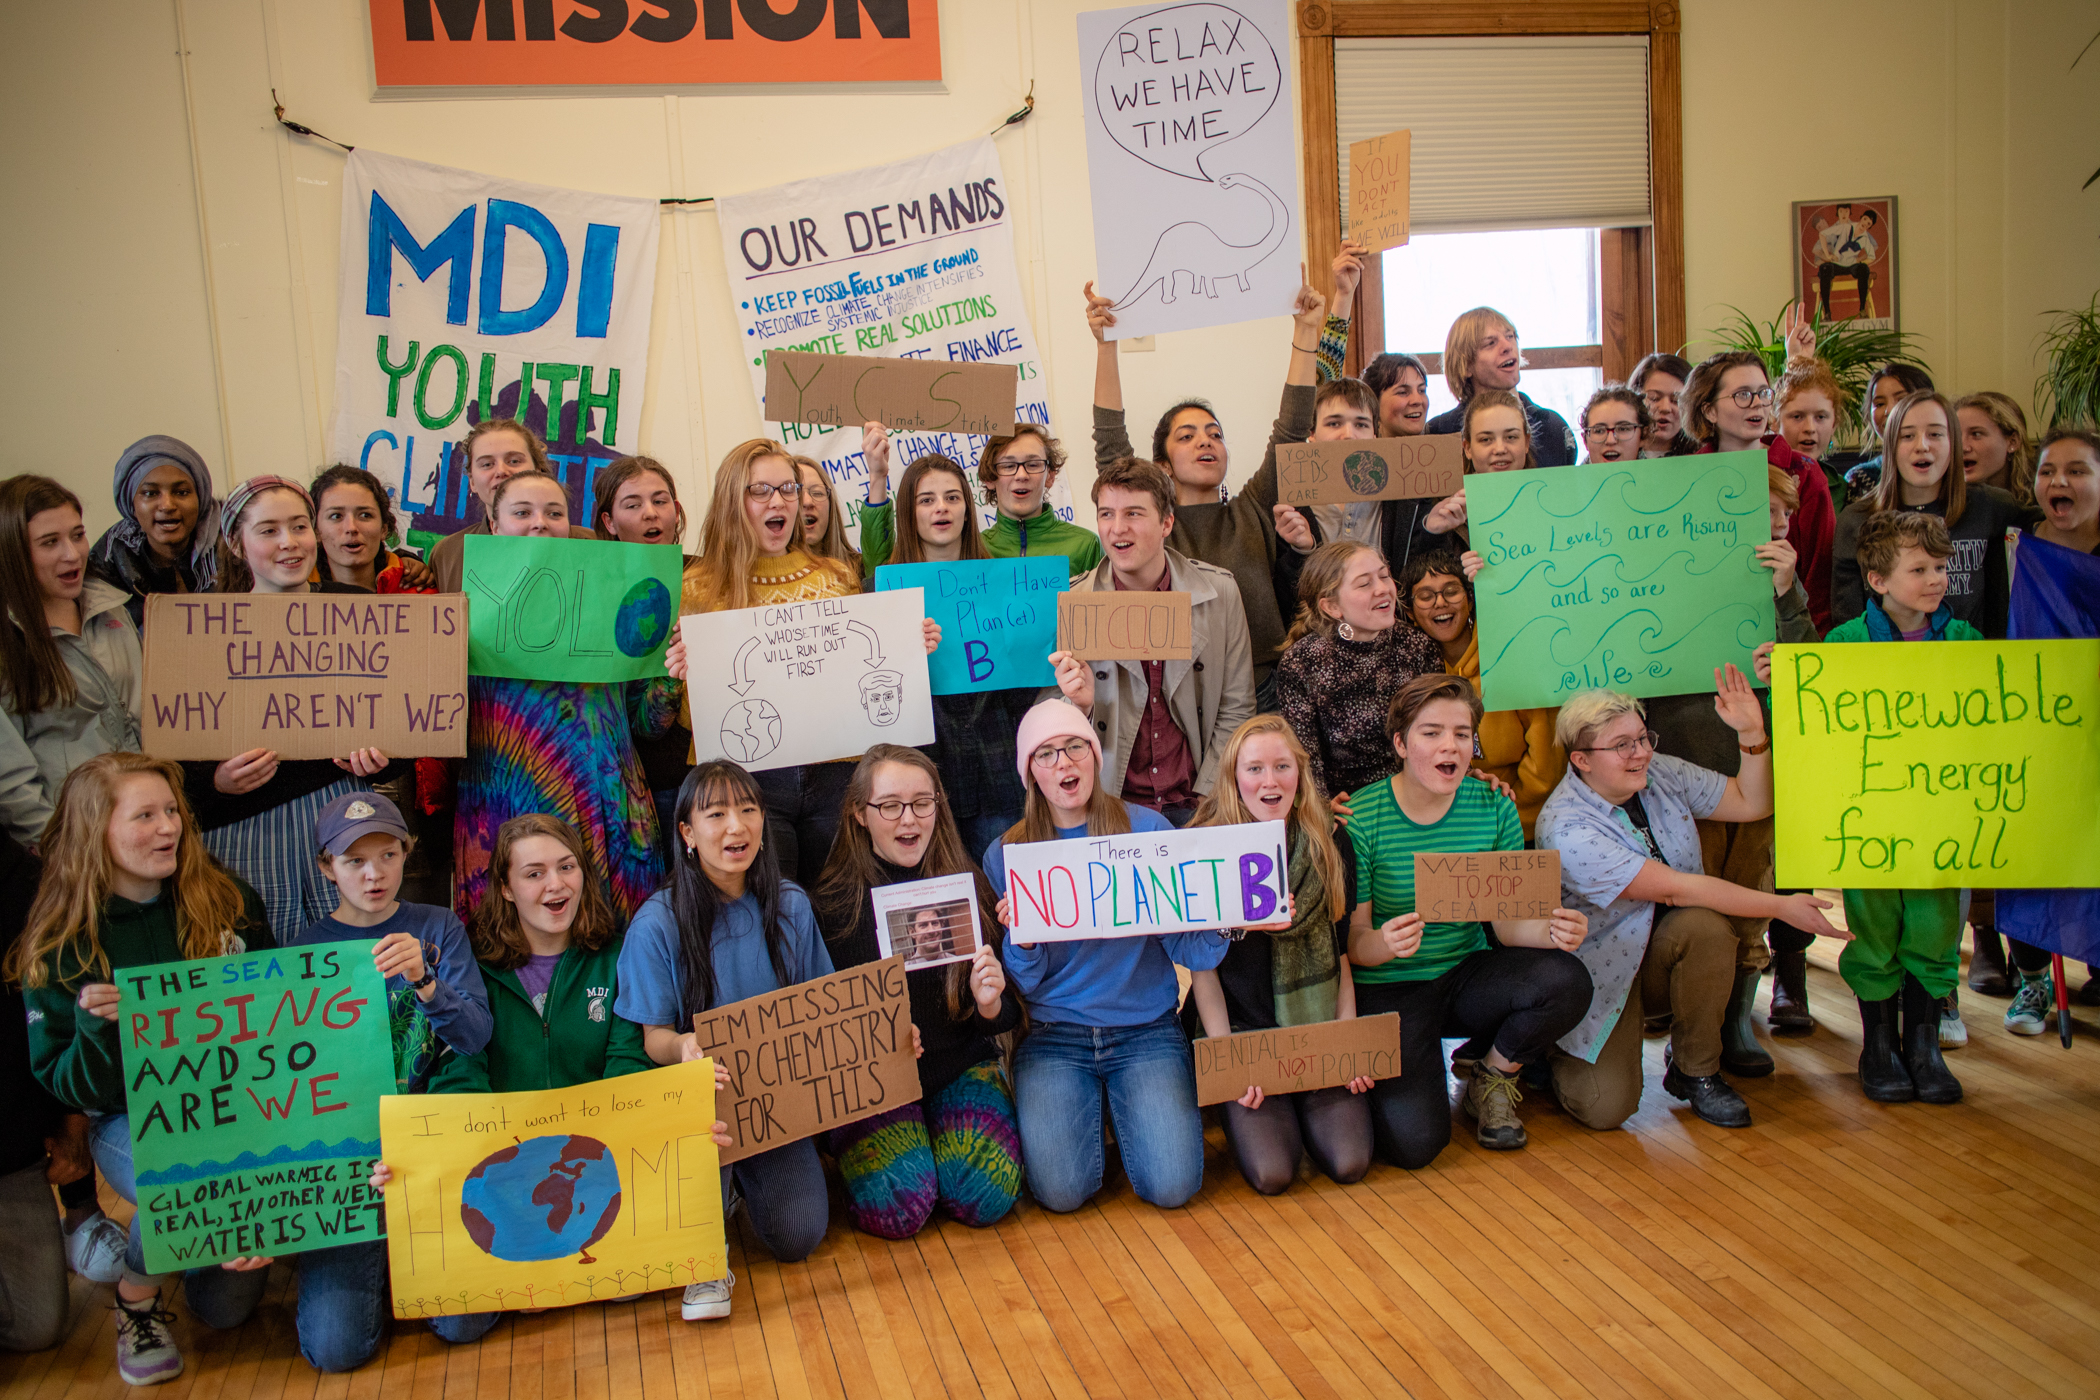 Students from College of the Atlantic and nearby Mount Desert Island High School join to demand a...